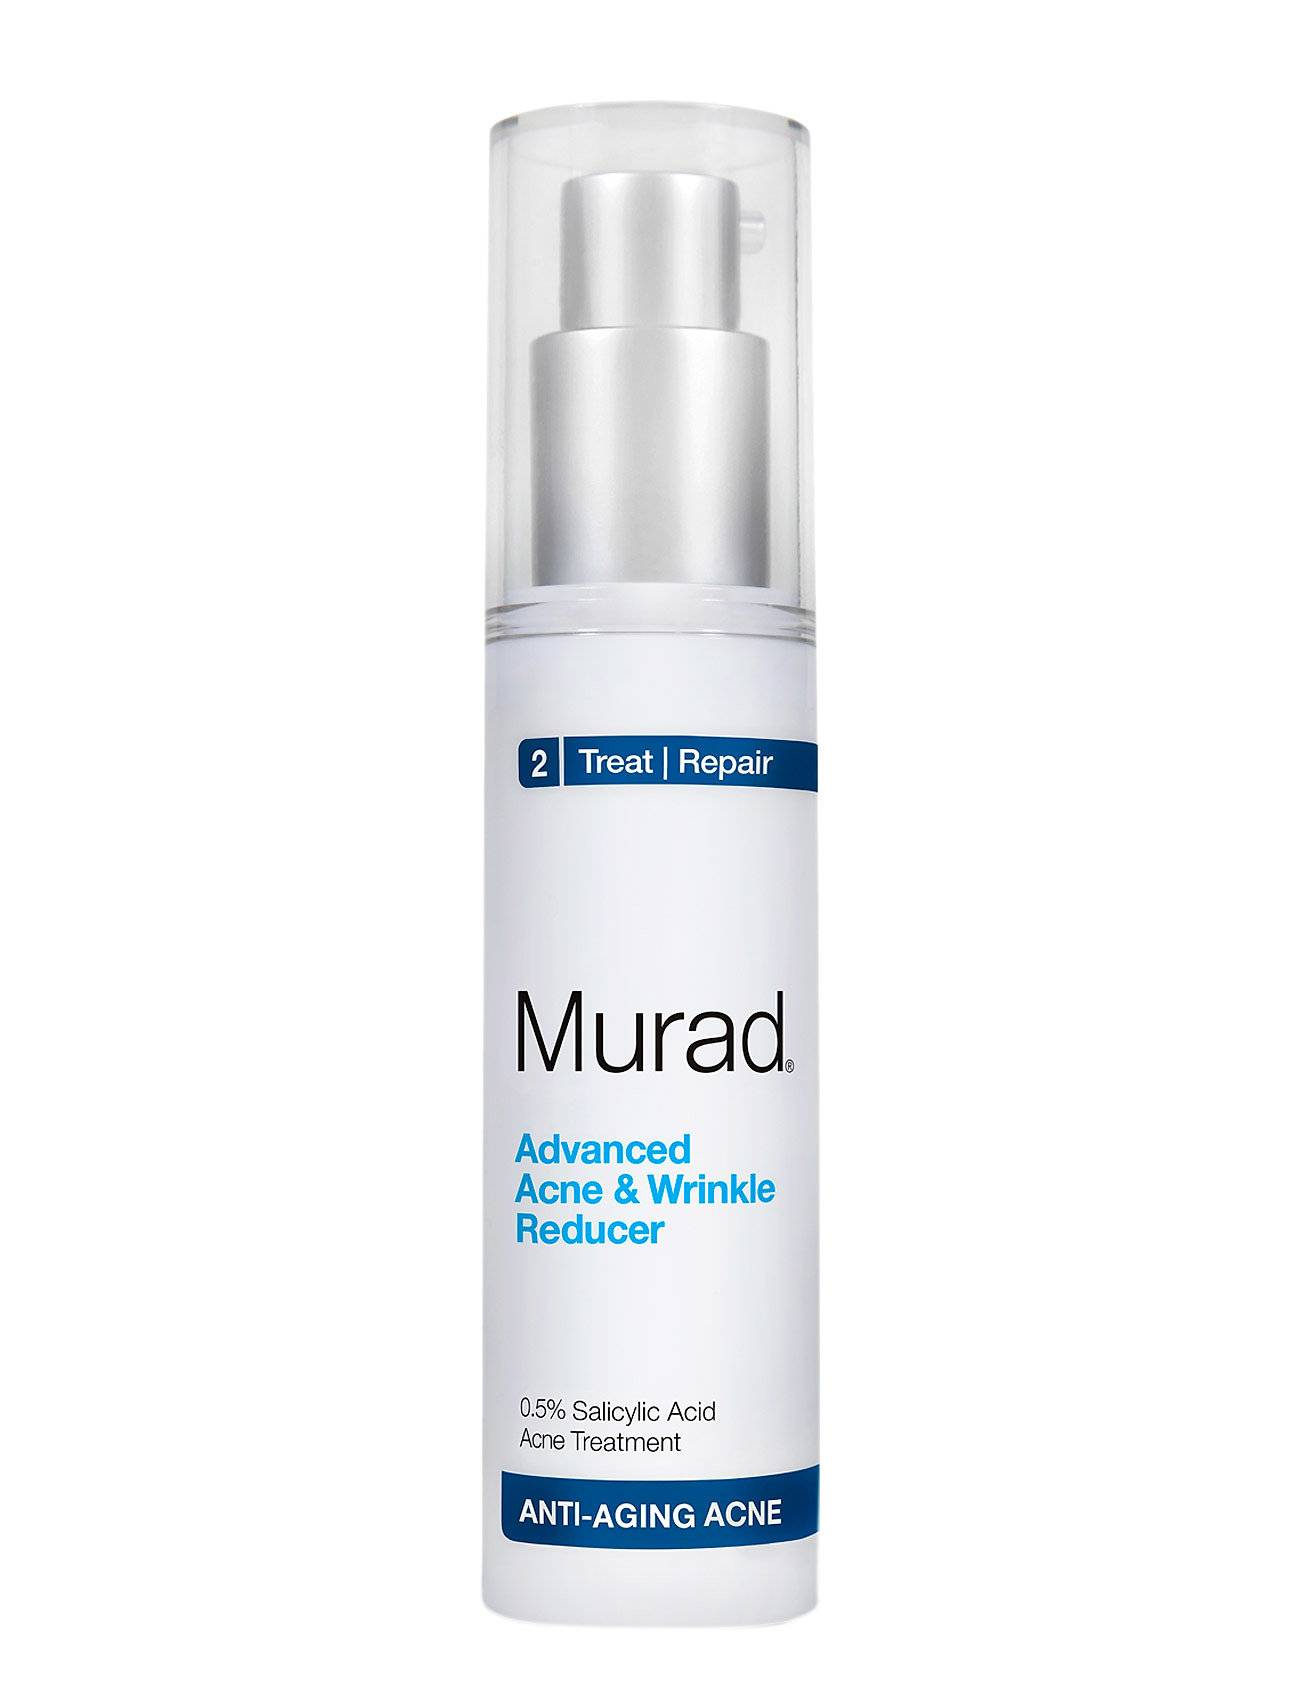 Murad Anti-Aging Blemish & Wrinkle Reducer